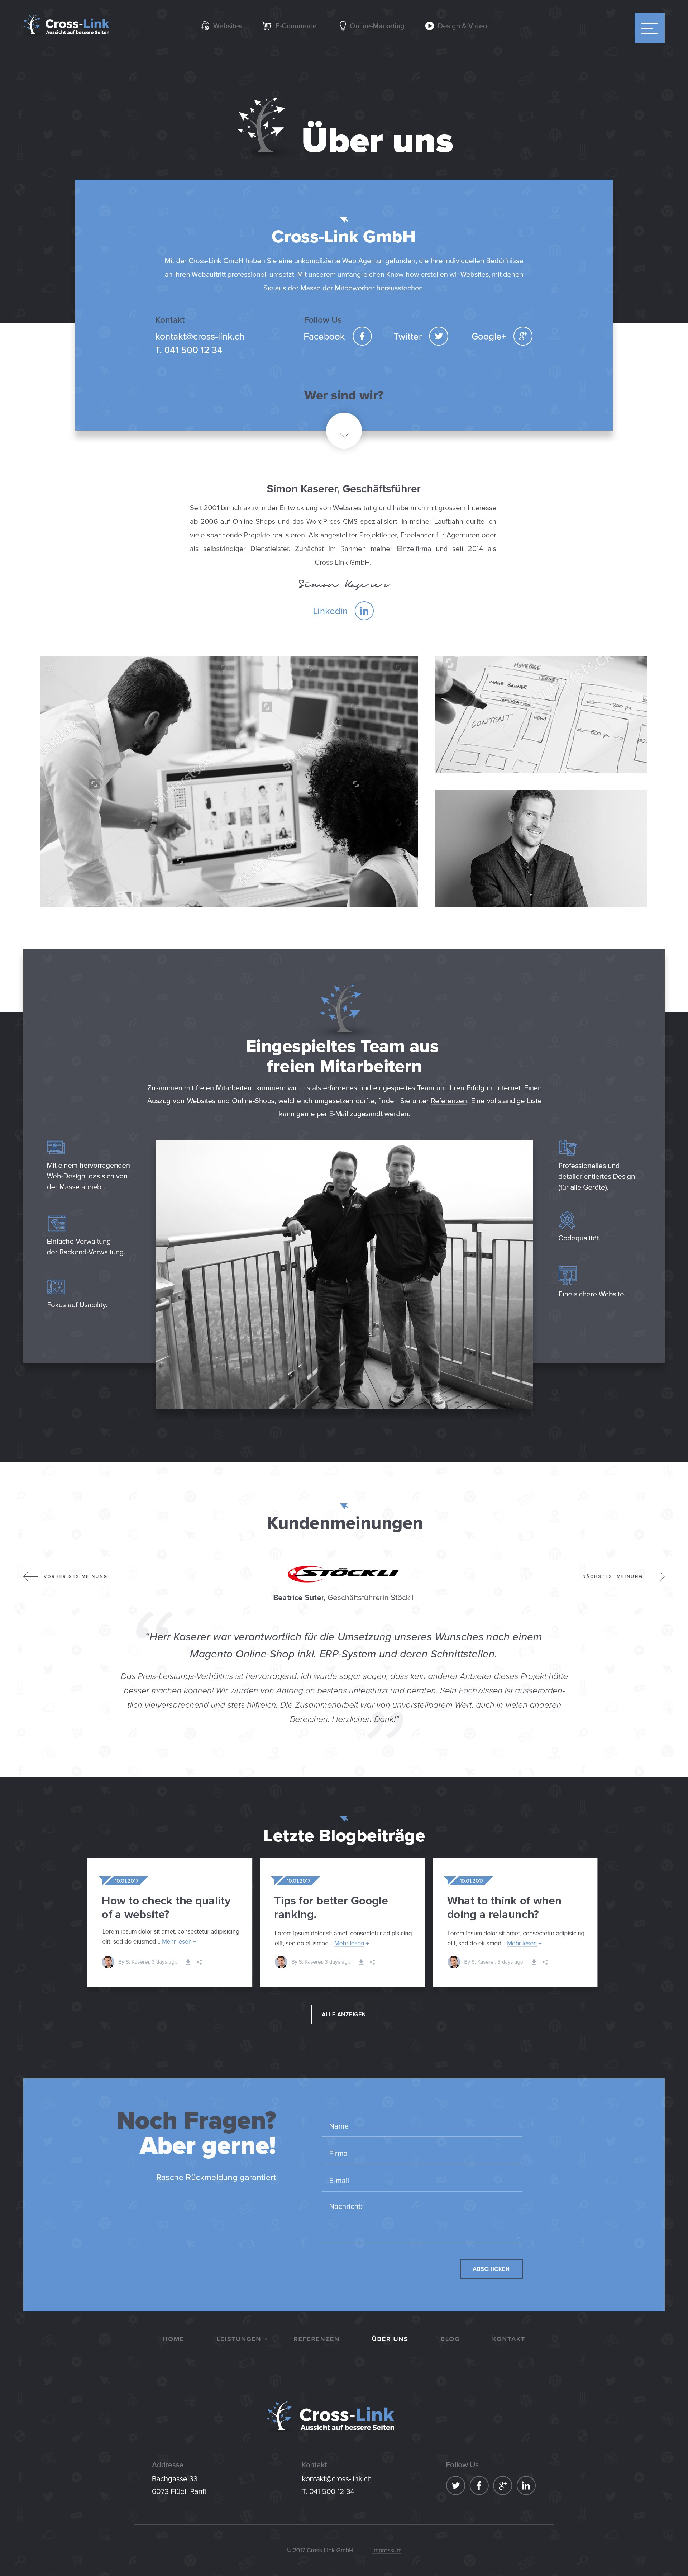 Web agency looking for creative & outstanding web design